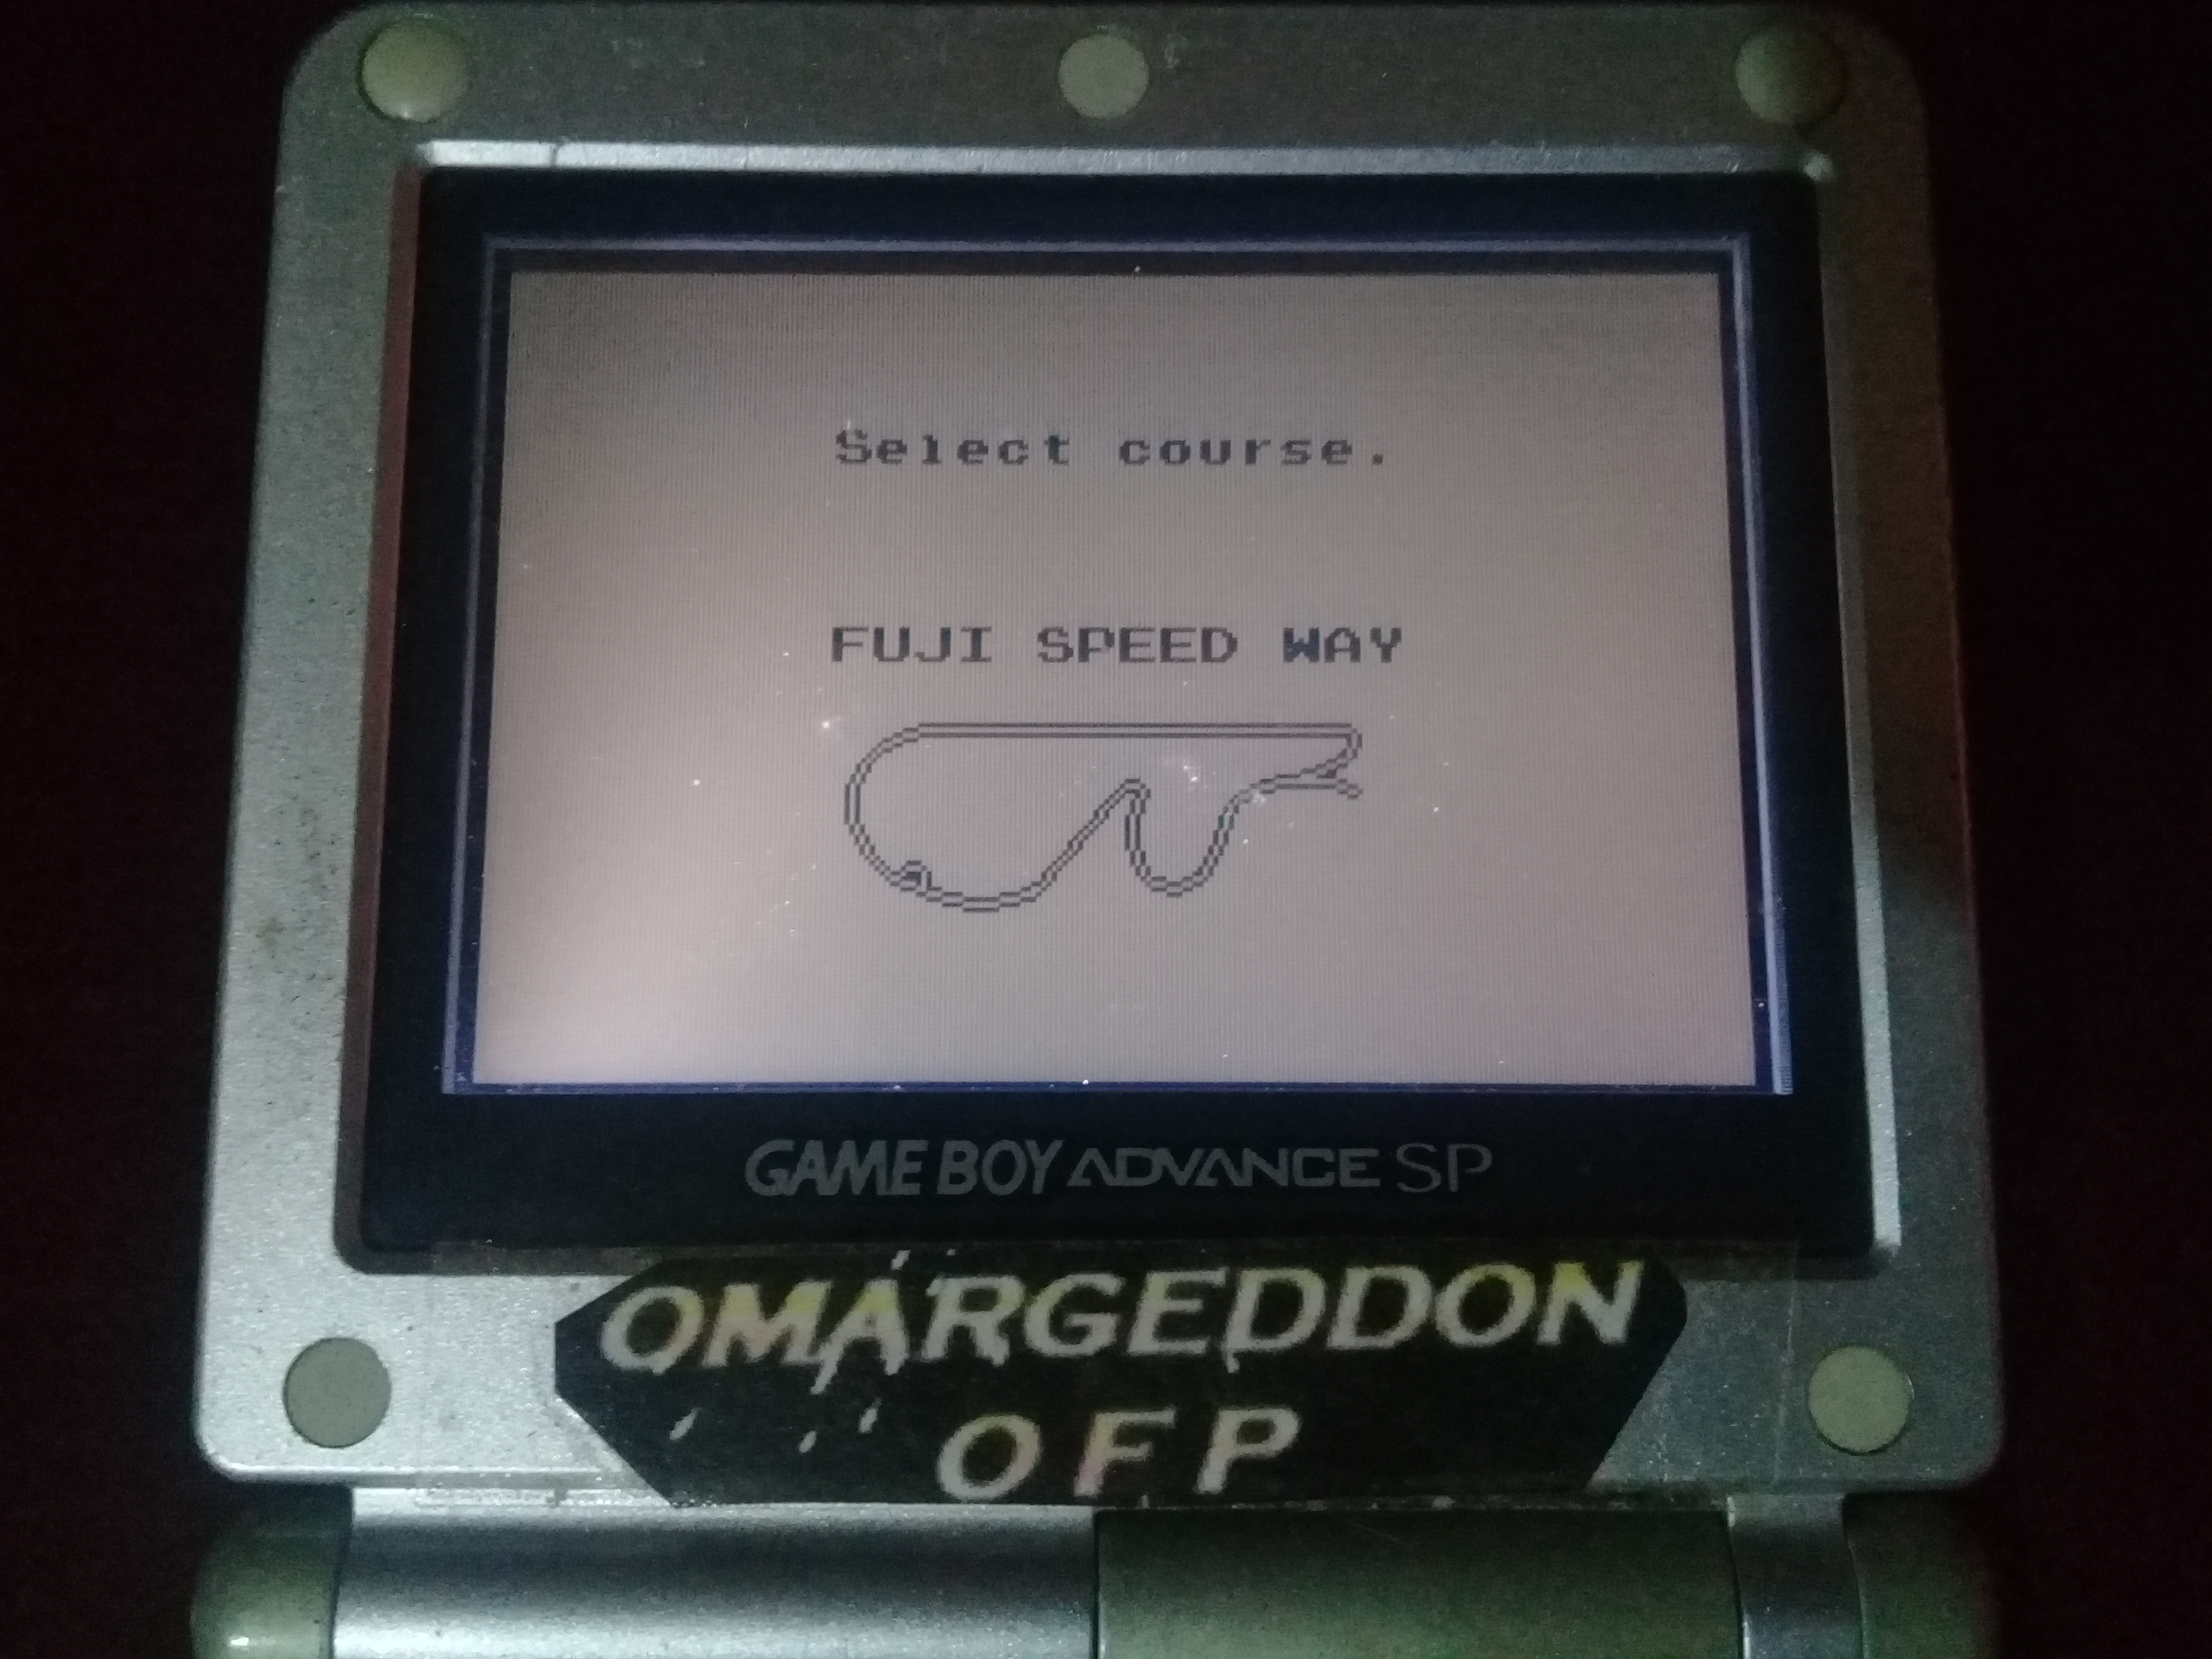 omargeddon: Racing Tamashii: Fuji Speedway [Practice] [Best Lap] (Game Boy) 0:01:05.36 points on 2020-06-07 16:50:57